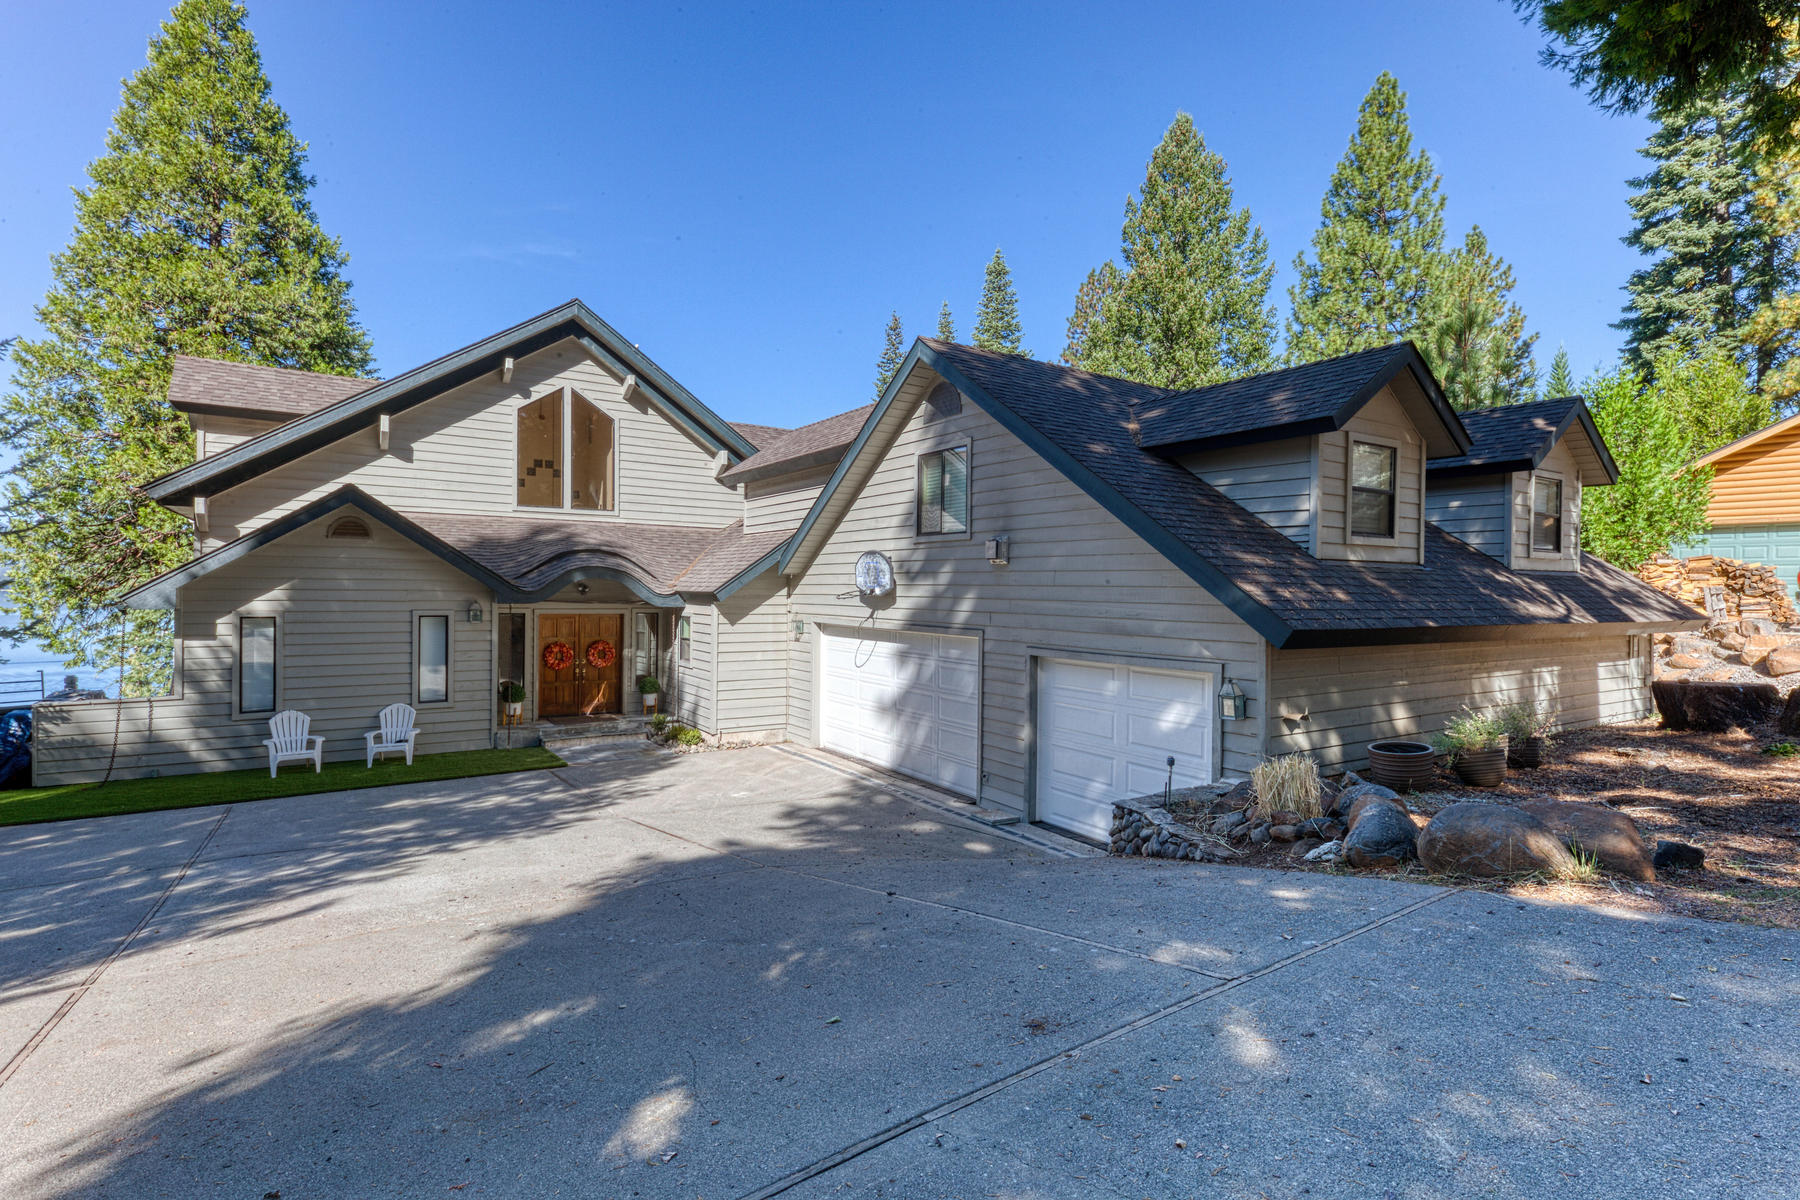 Single Family Homes for Sale at 837 Lassen View Dr, Lake Almannor, CA 96137 837 Lassen View Dr. Lake Almanor, California 96137 United States